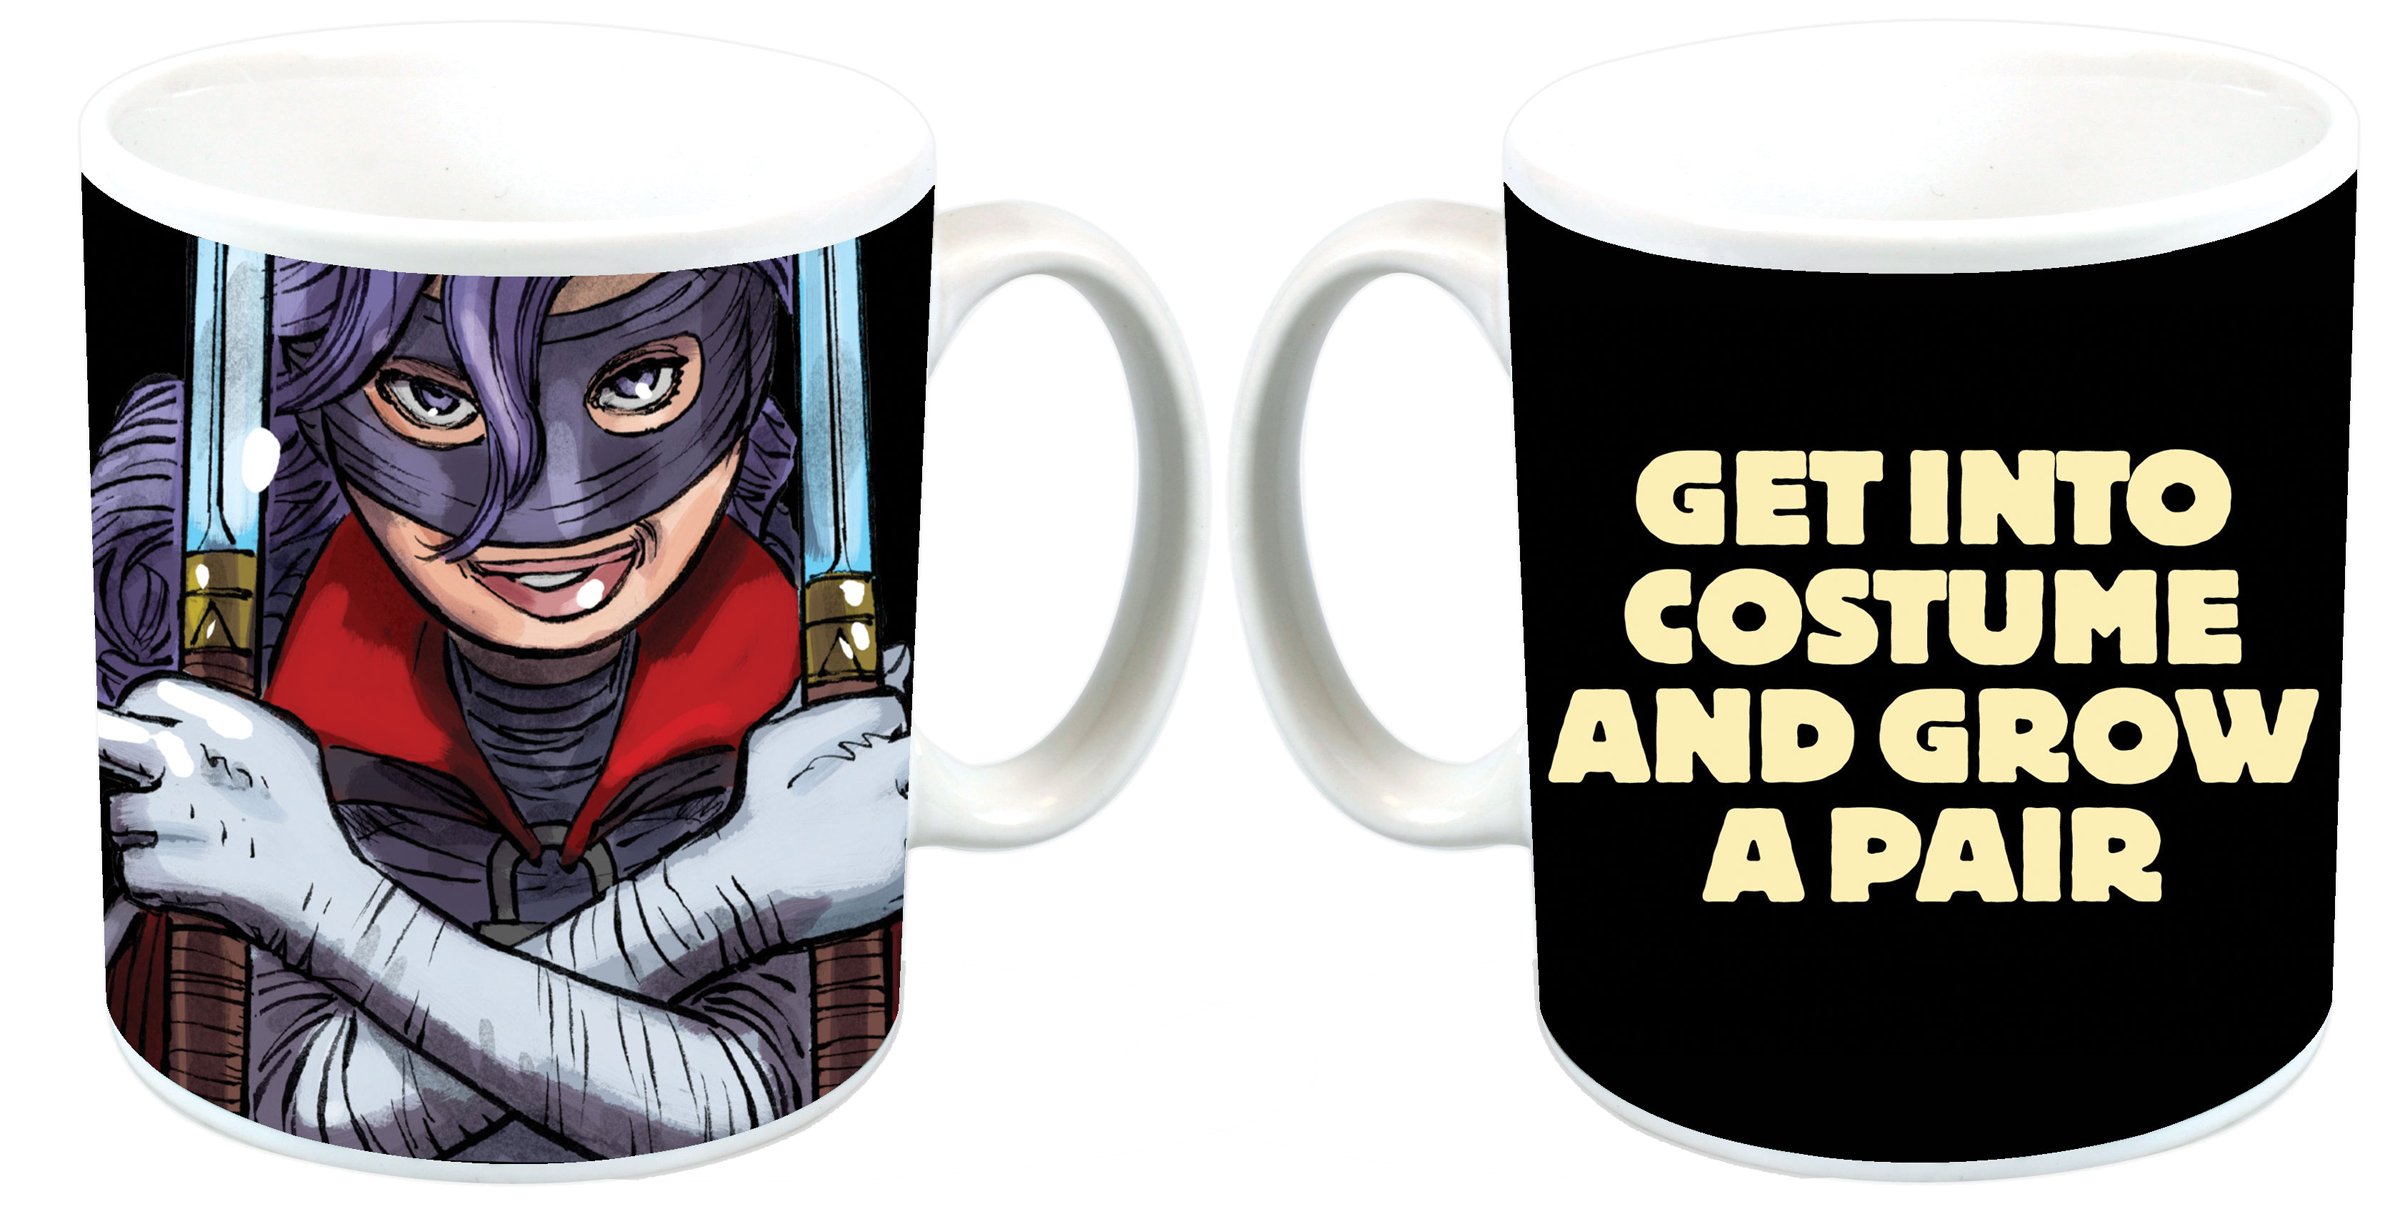 KICK-ASS GET INTO COSTUME GROW A PAIR MUG